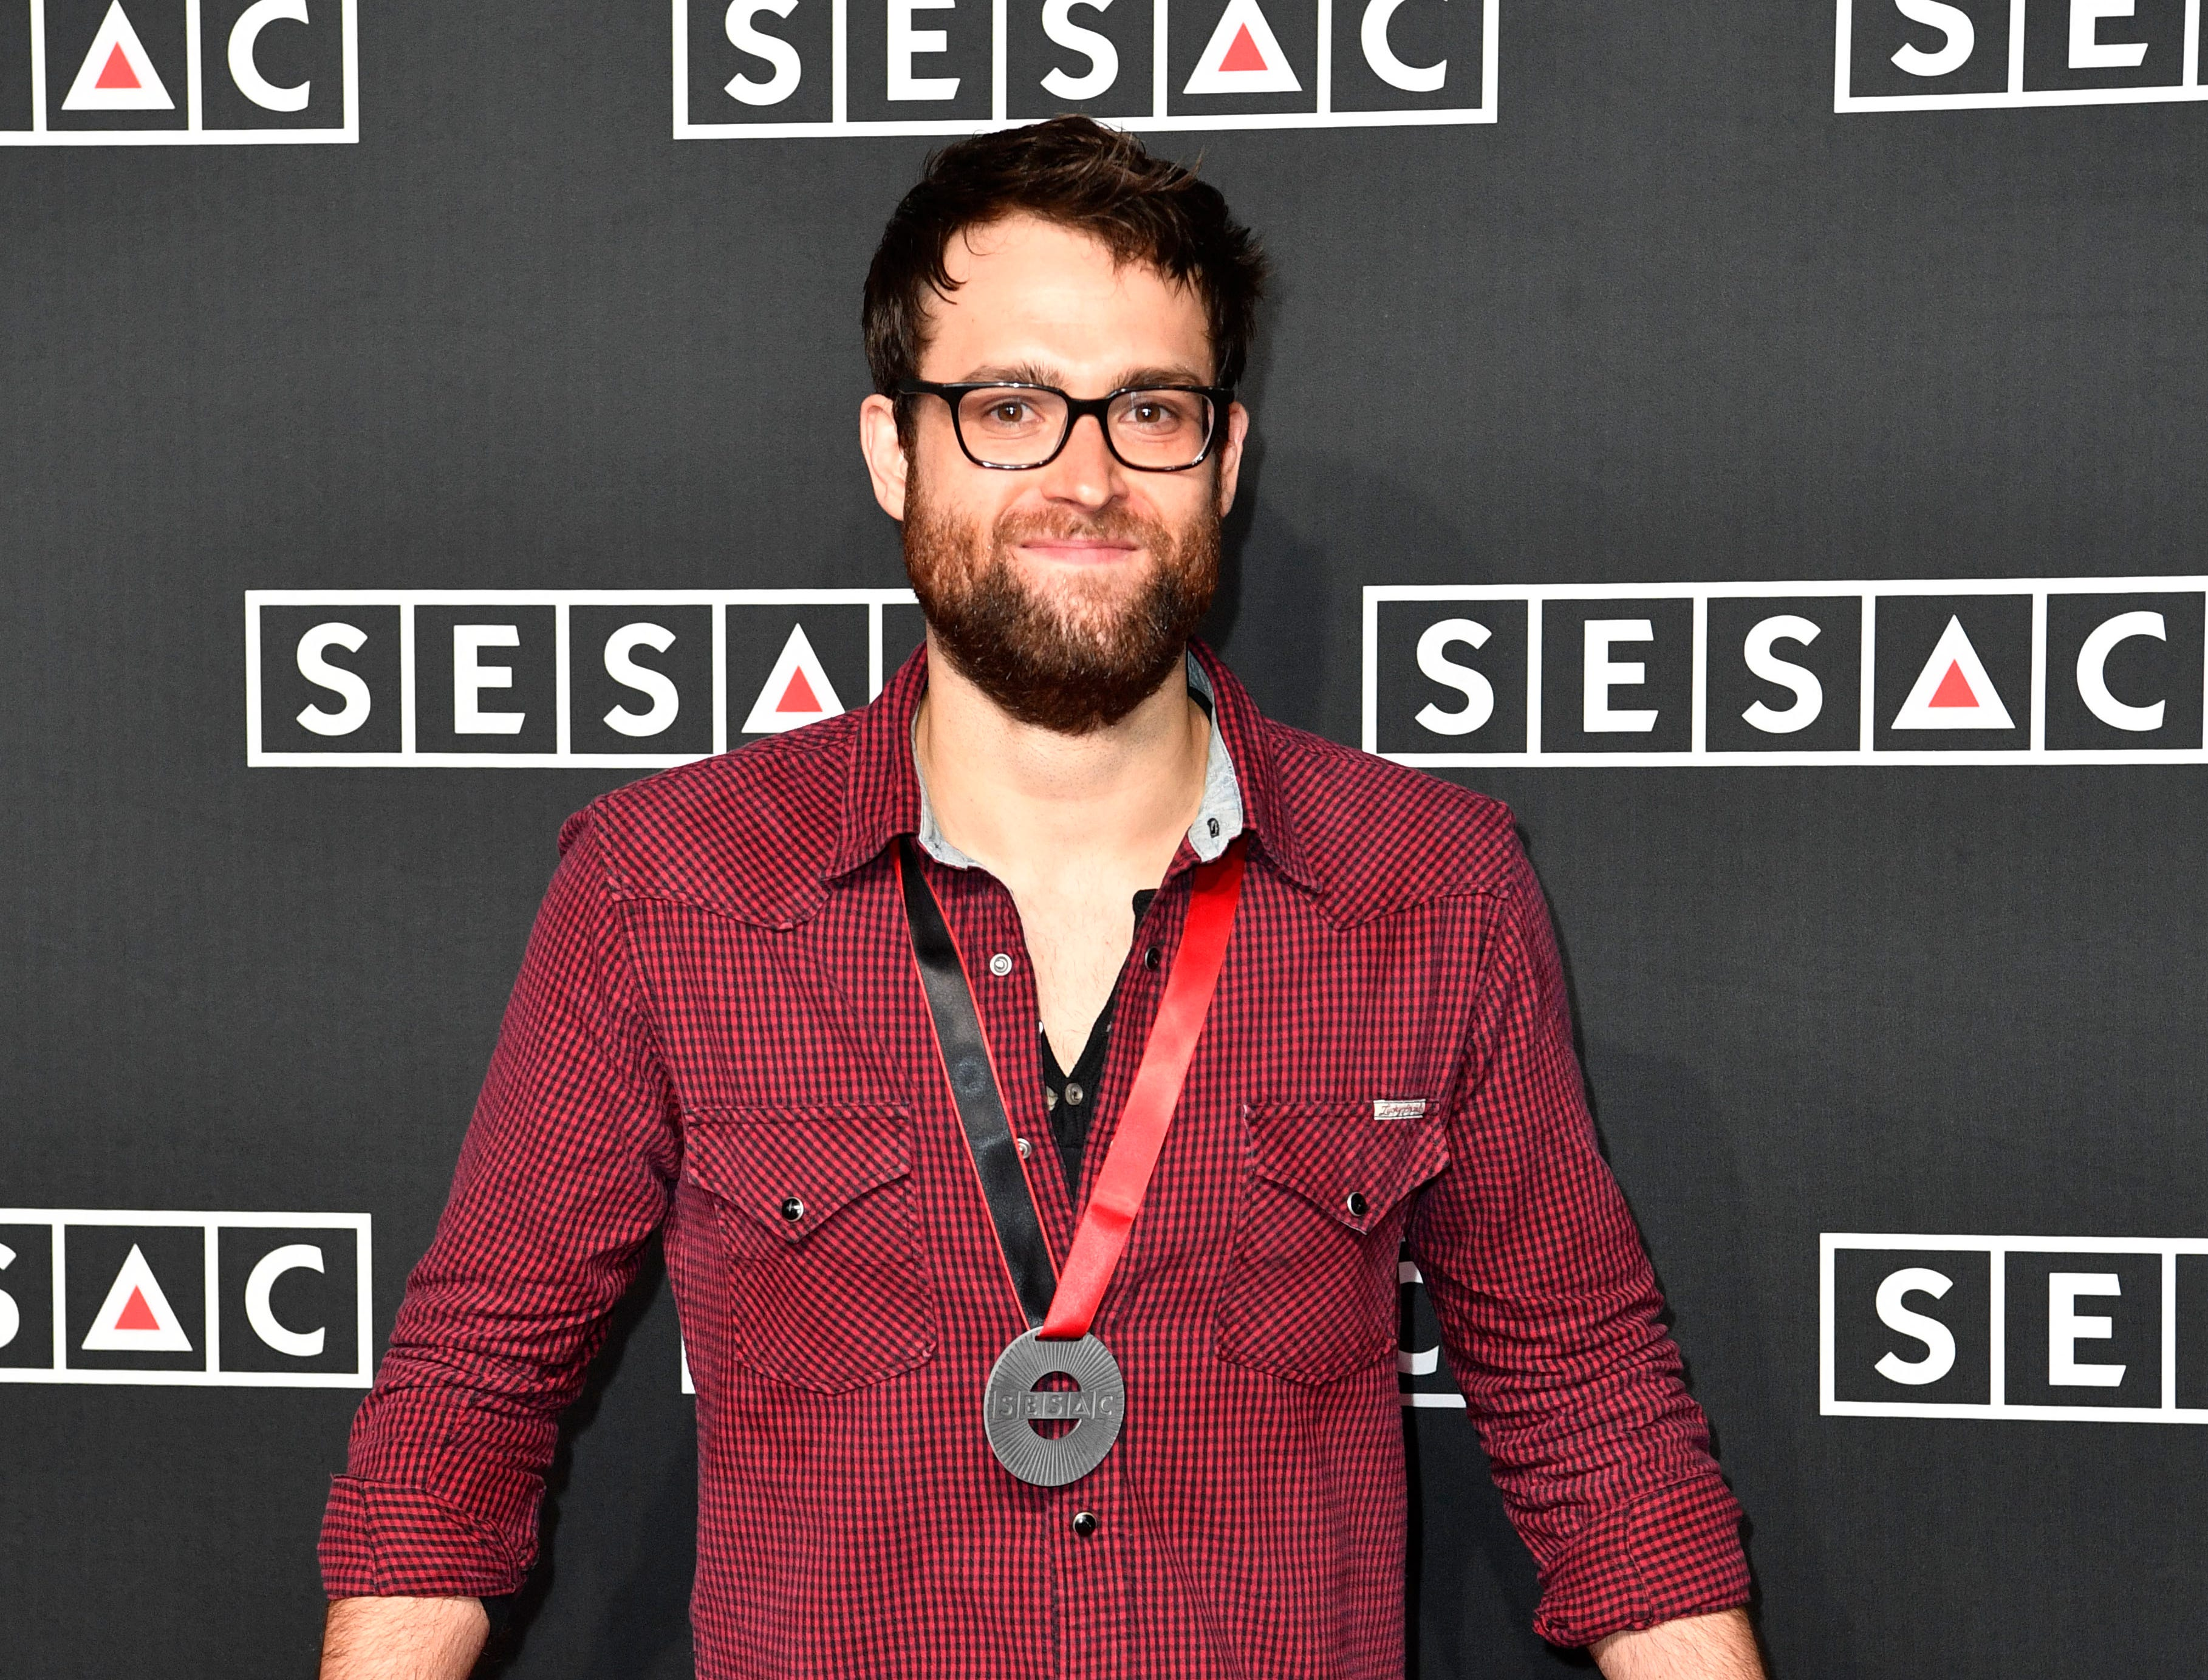 Sammy Mitchell on the red carpet at the SESAC Nashville Music Awards at the Country Music Hall of Fame and Museum Sunday Nov. 11, 2018, in Nashville, Tenn.